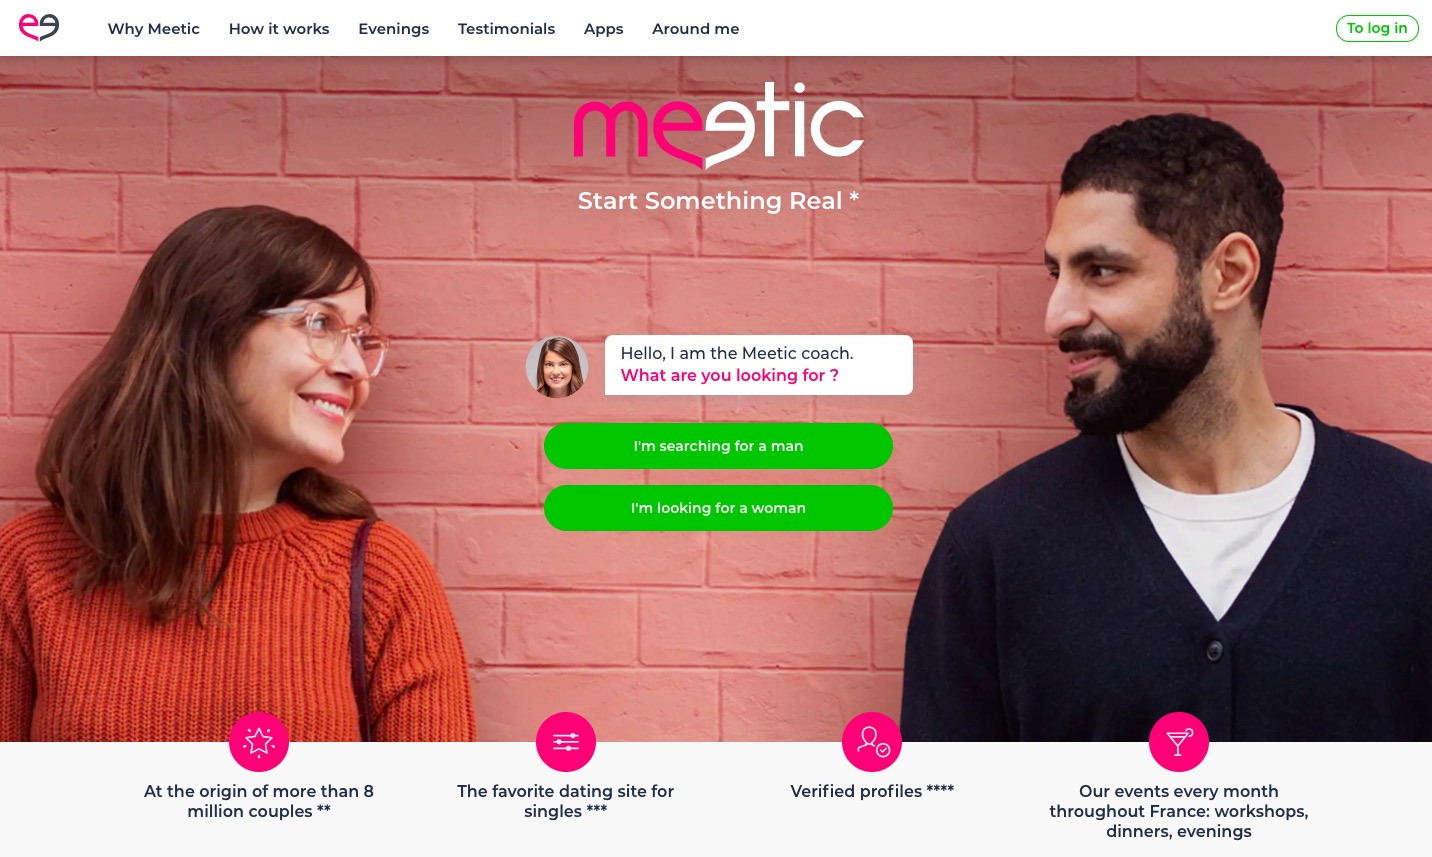 Meetic main page